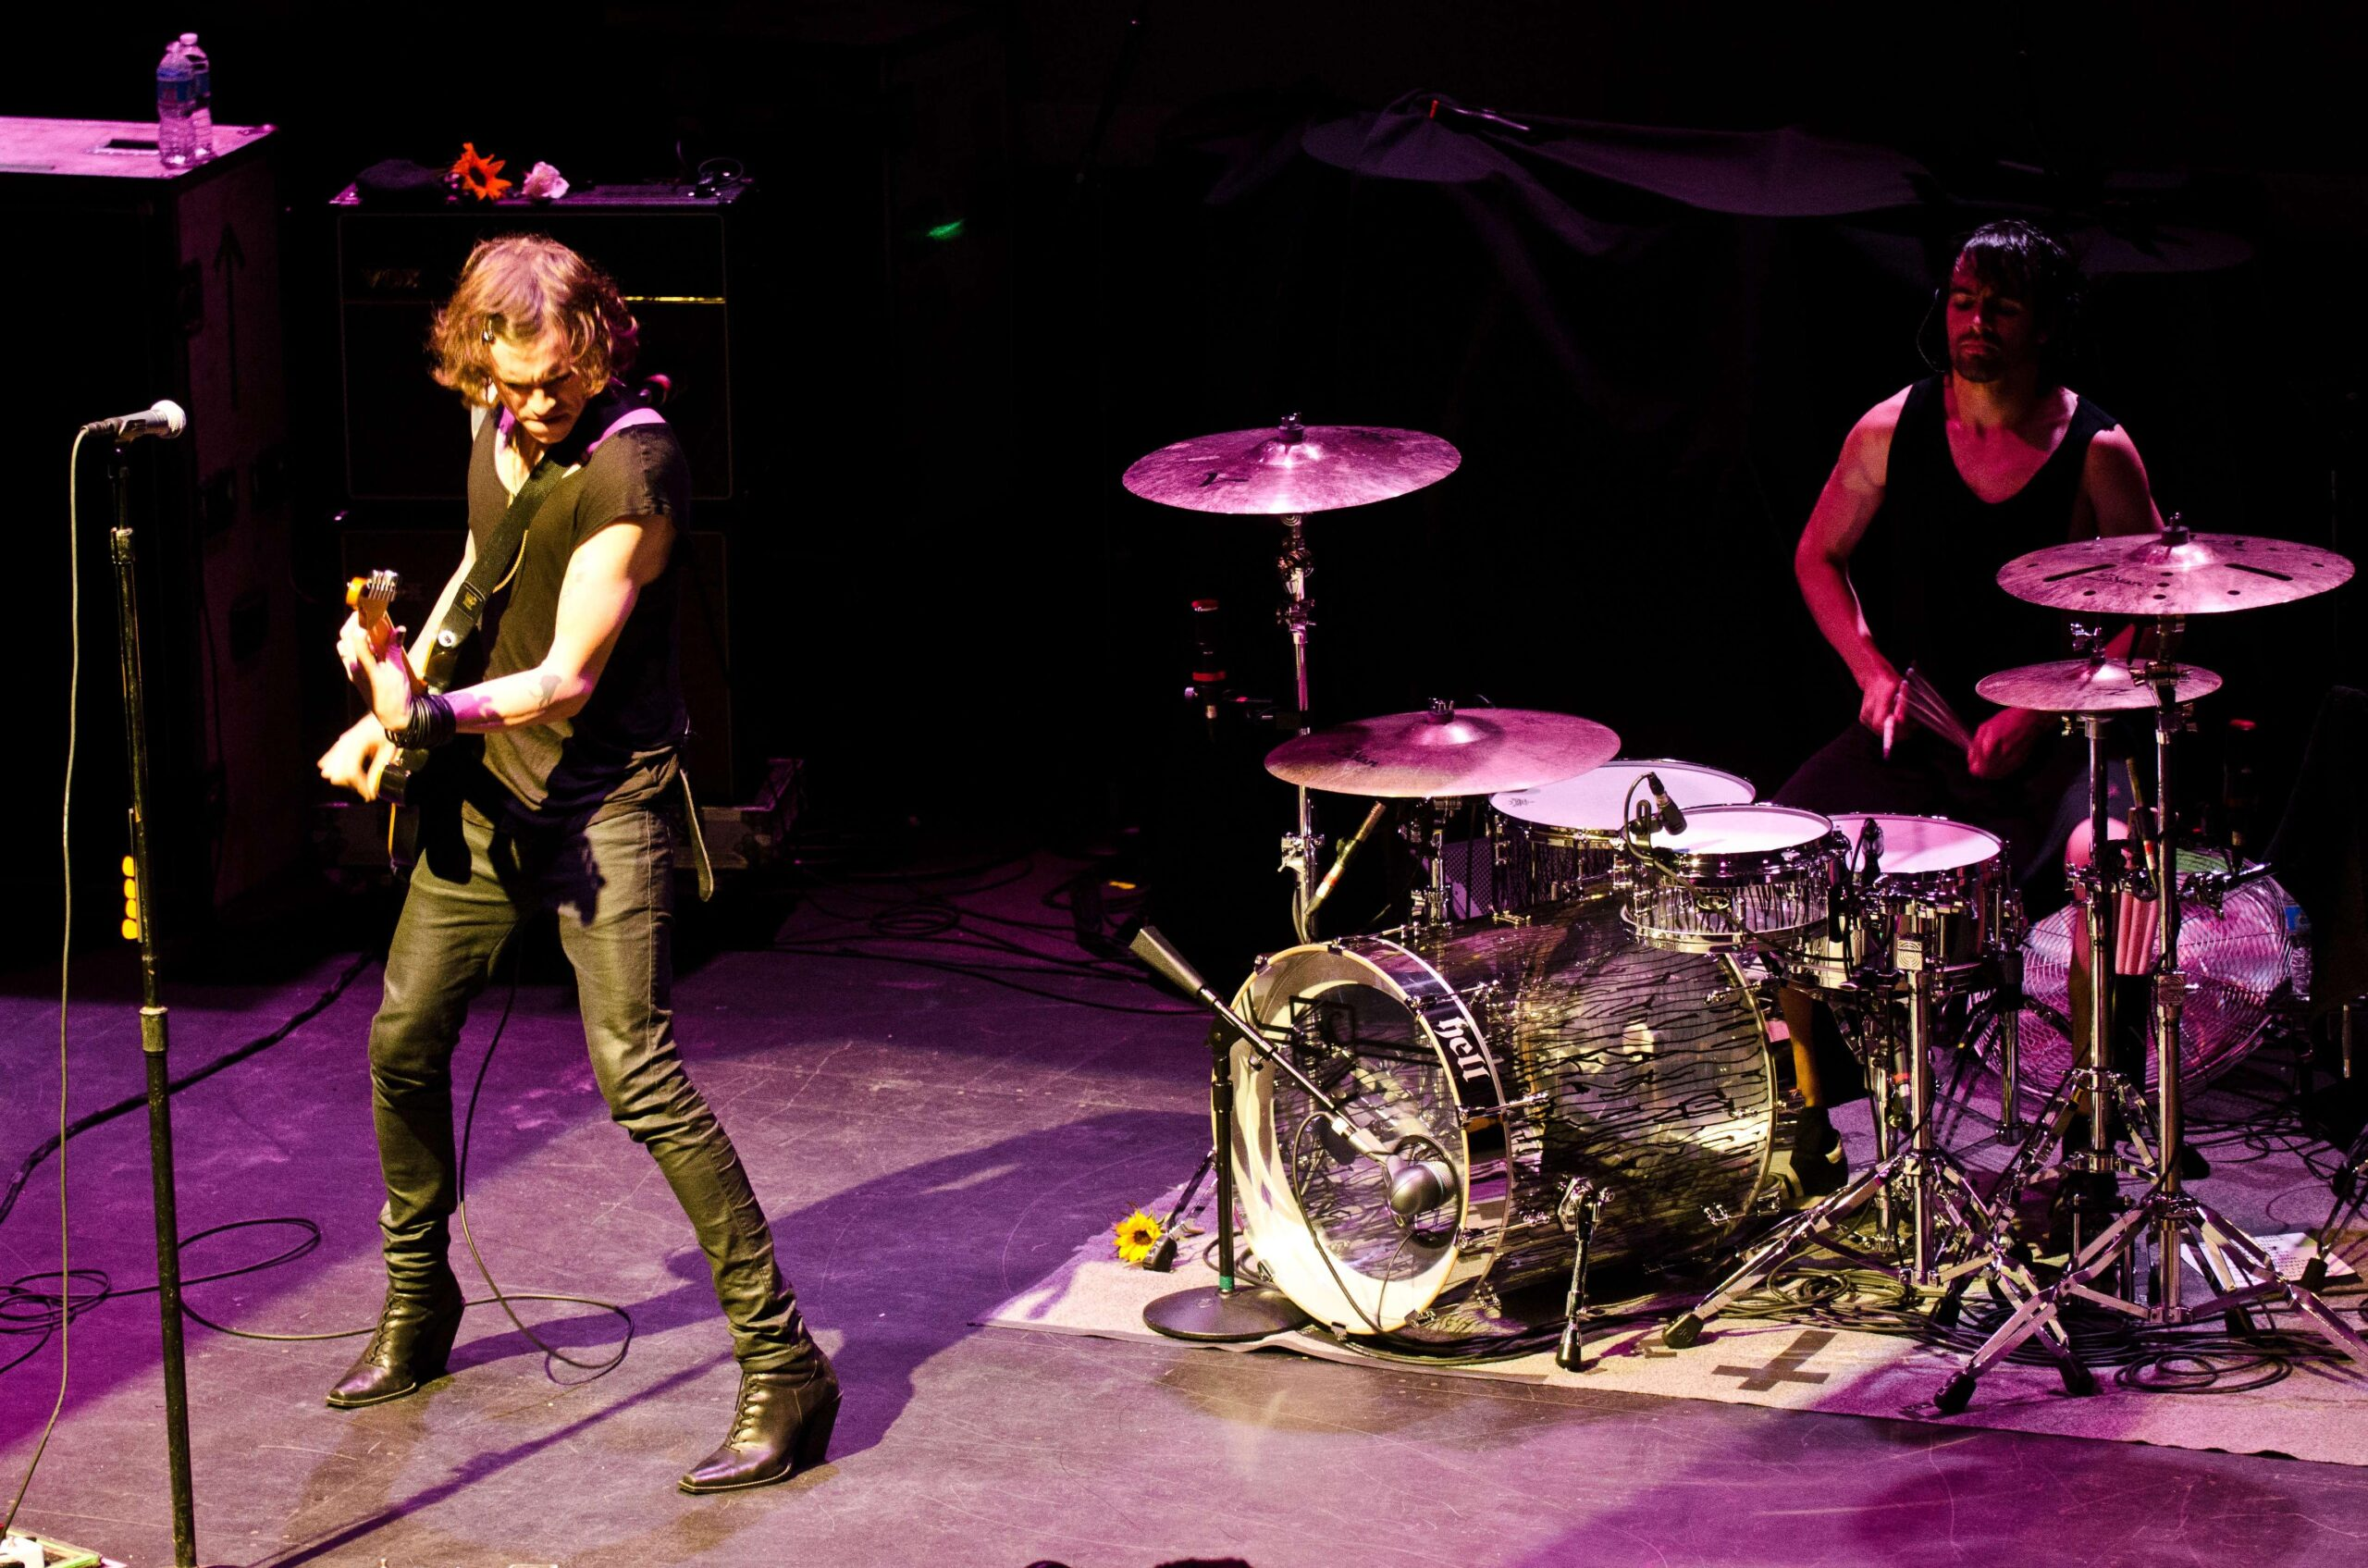 Celebrating Women's Live History: Laura Jane Grace Plays San Diego's Humphreys Concerts By The Bay In May 2012